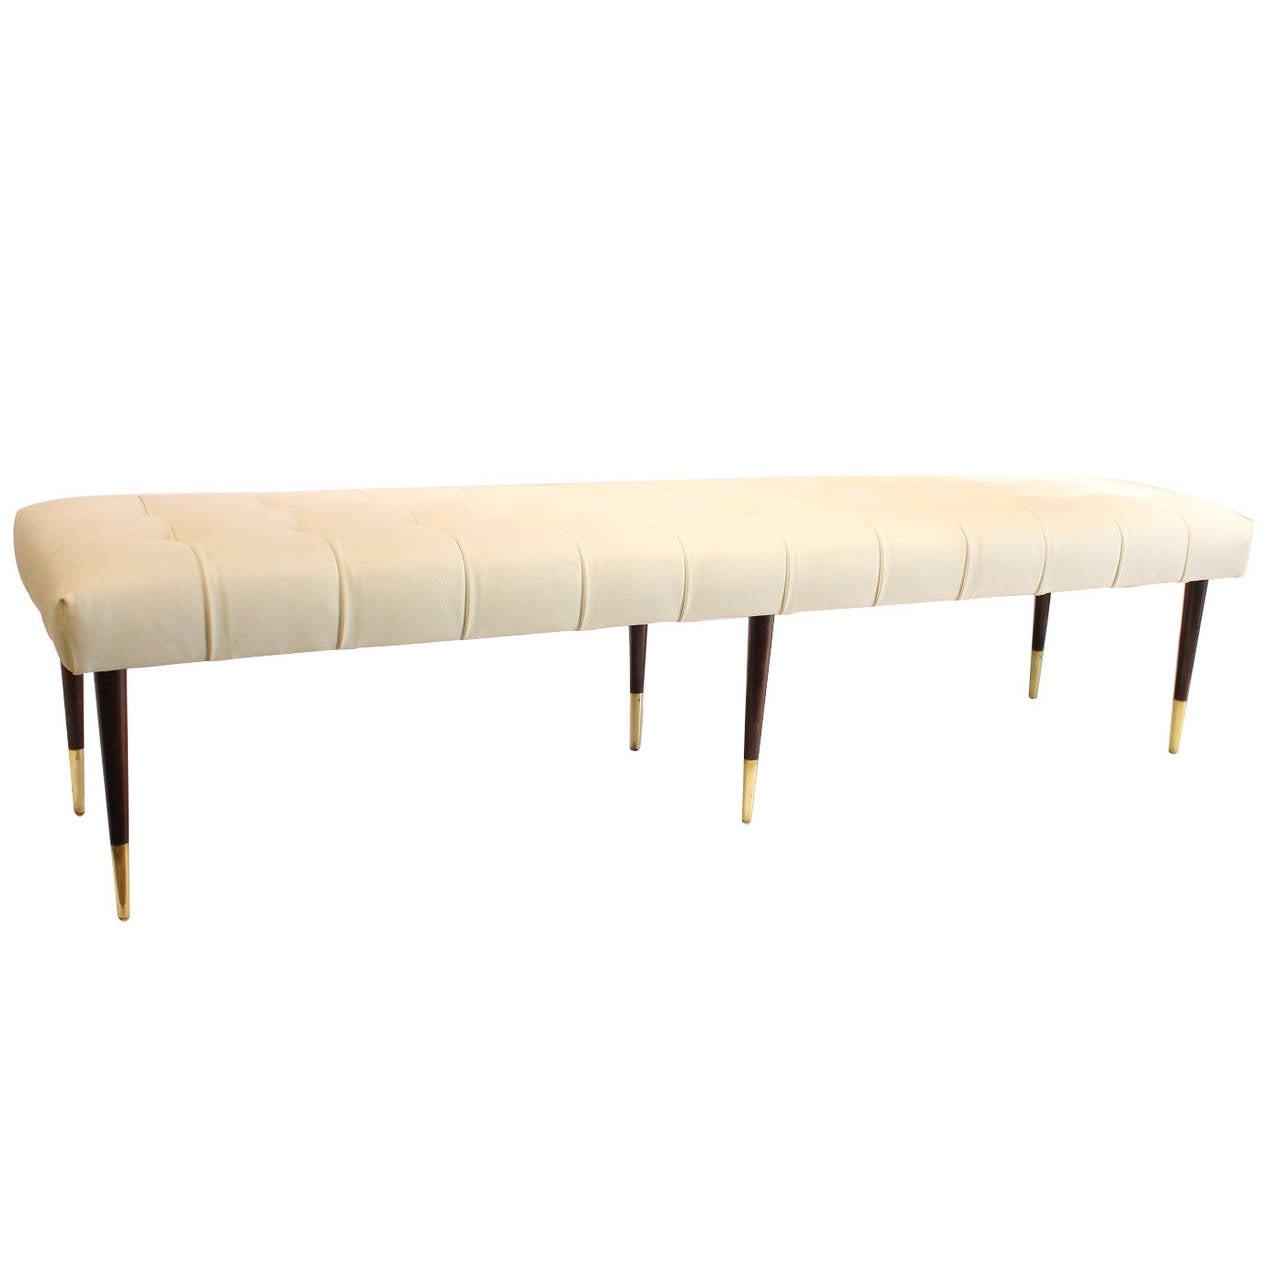 Tufted Leather Bench By Paul Frankl At 1stdibs